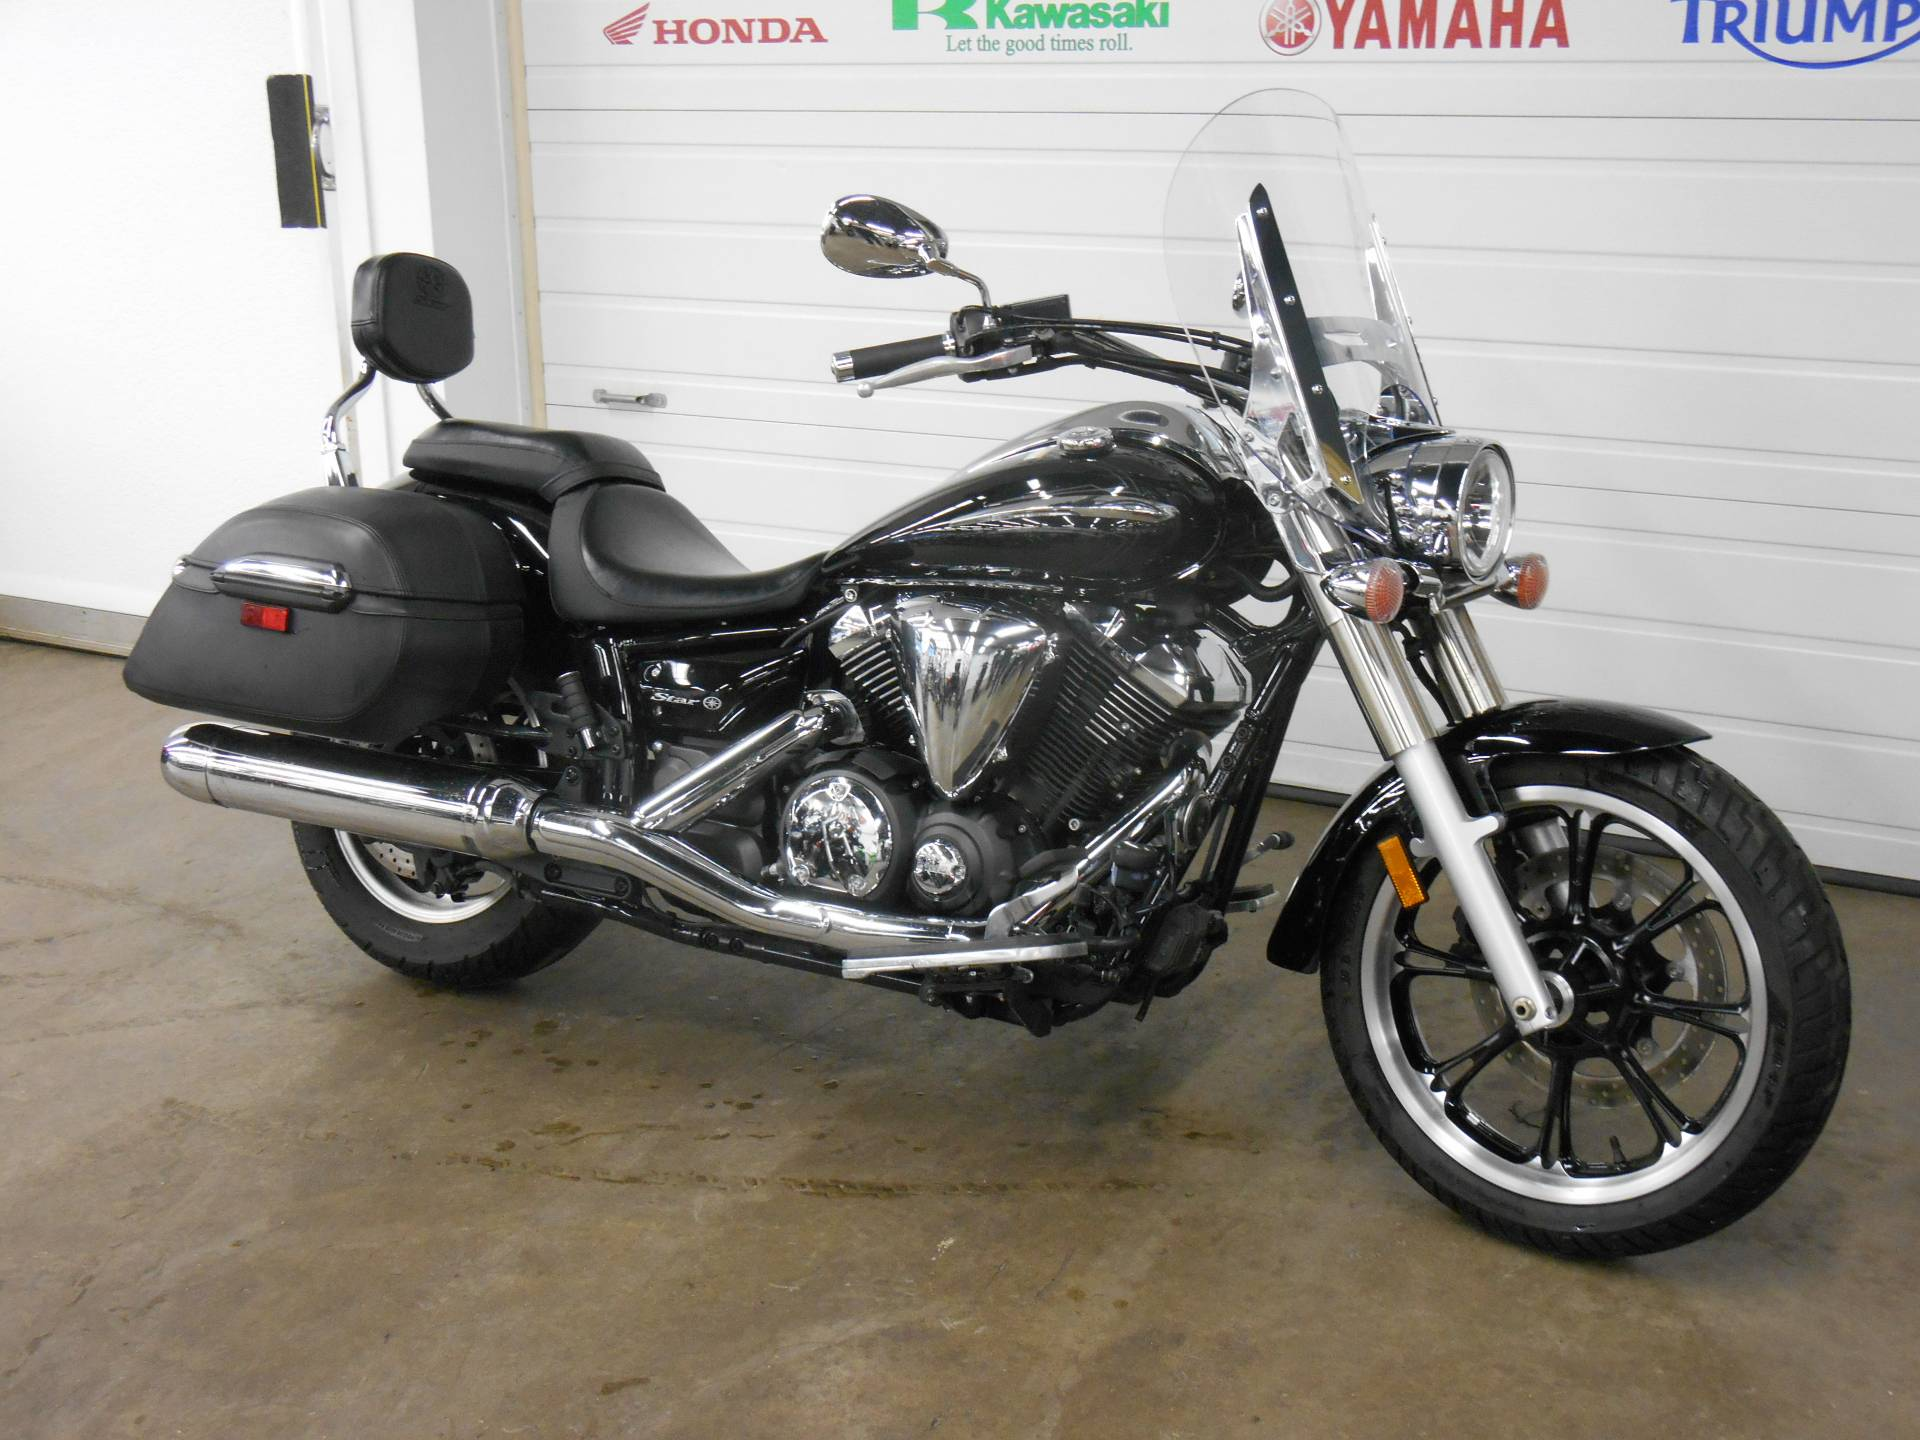 2011 Yamaha V Star 950 Tourer in Dubuque, Iowa